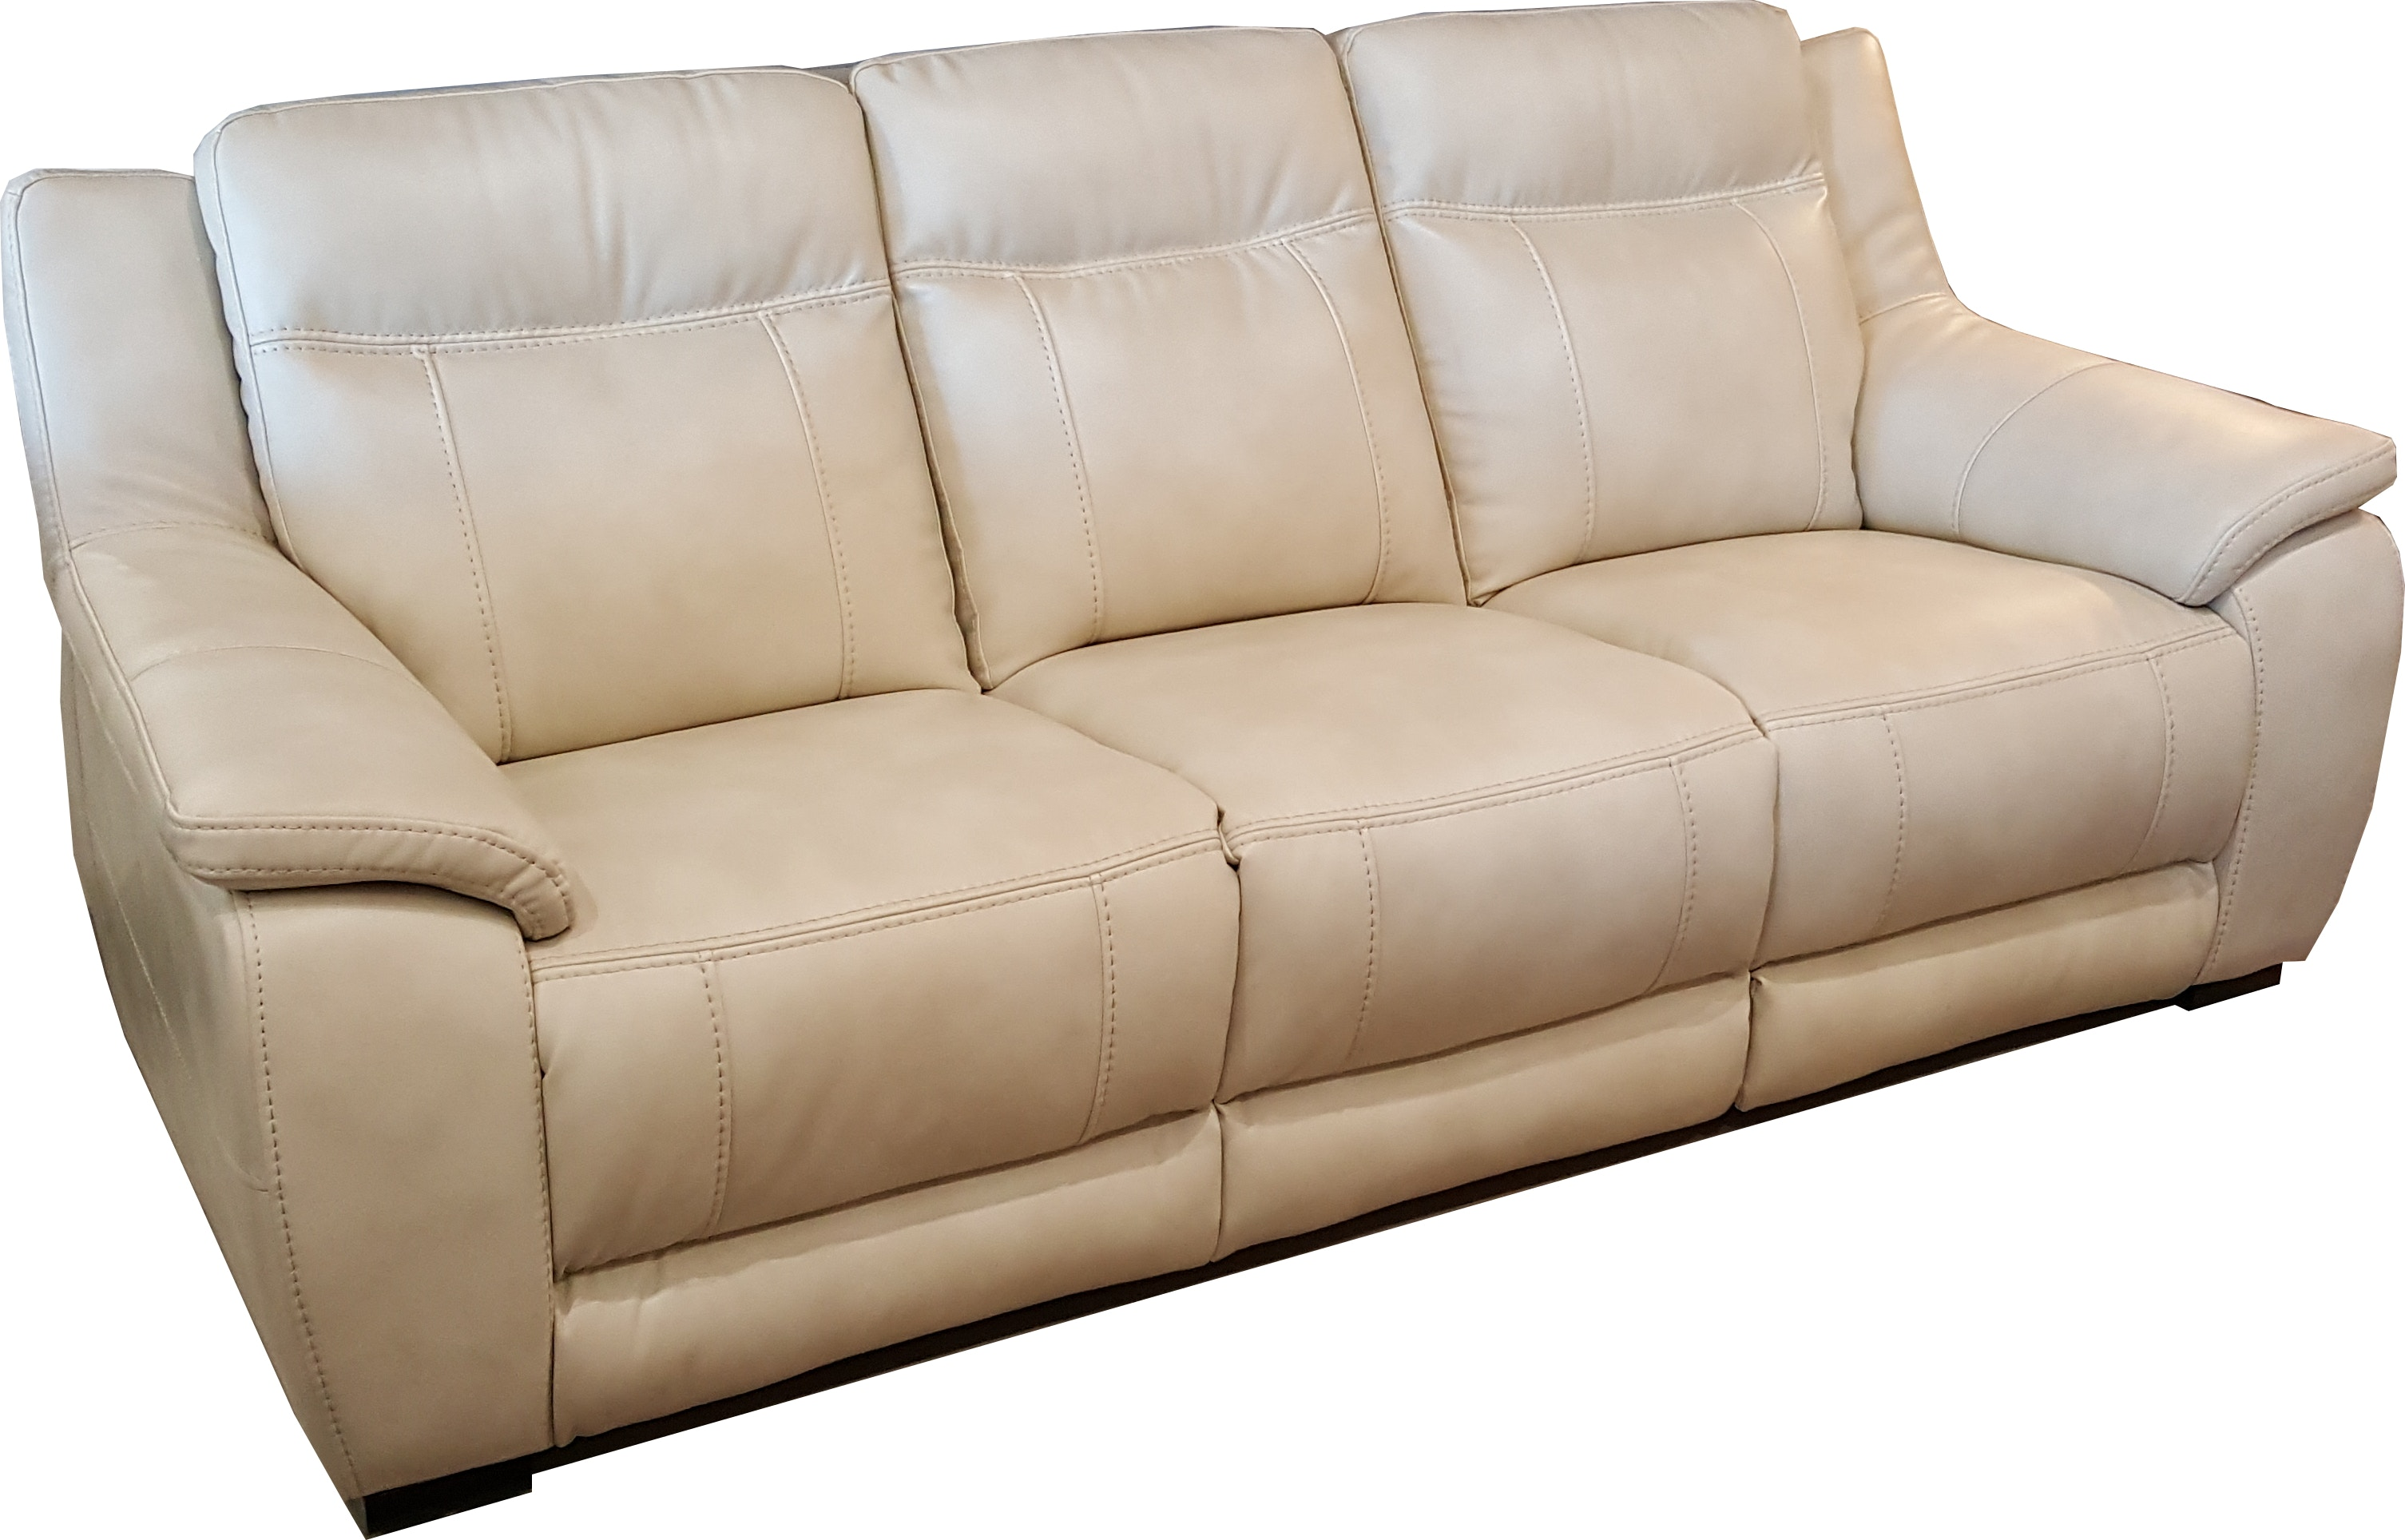 Finesse Taylor Sofa In Oyster Bolero Fabric 311360